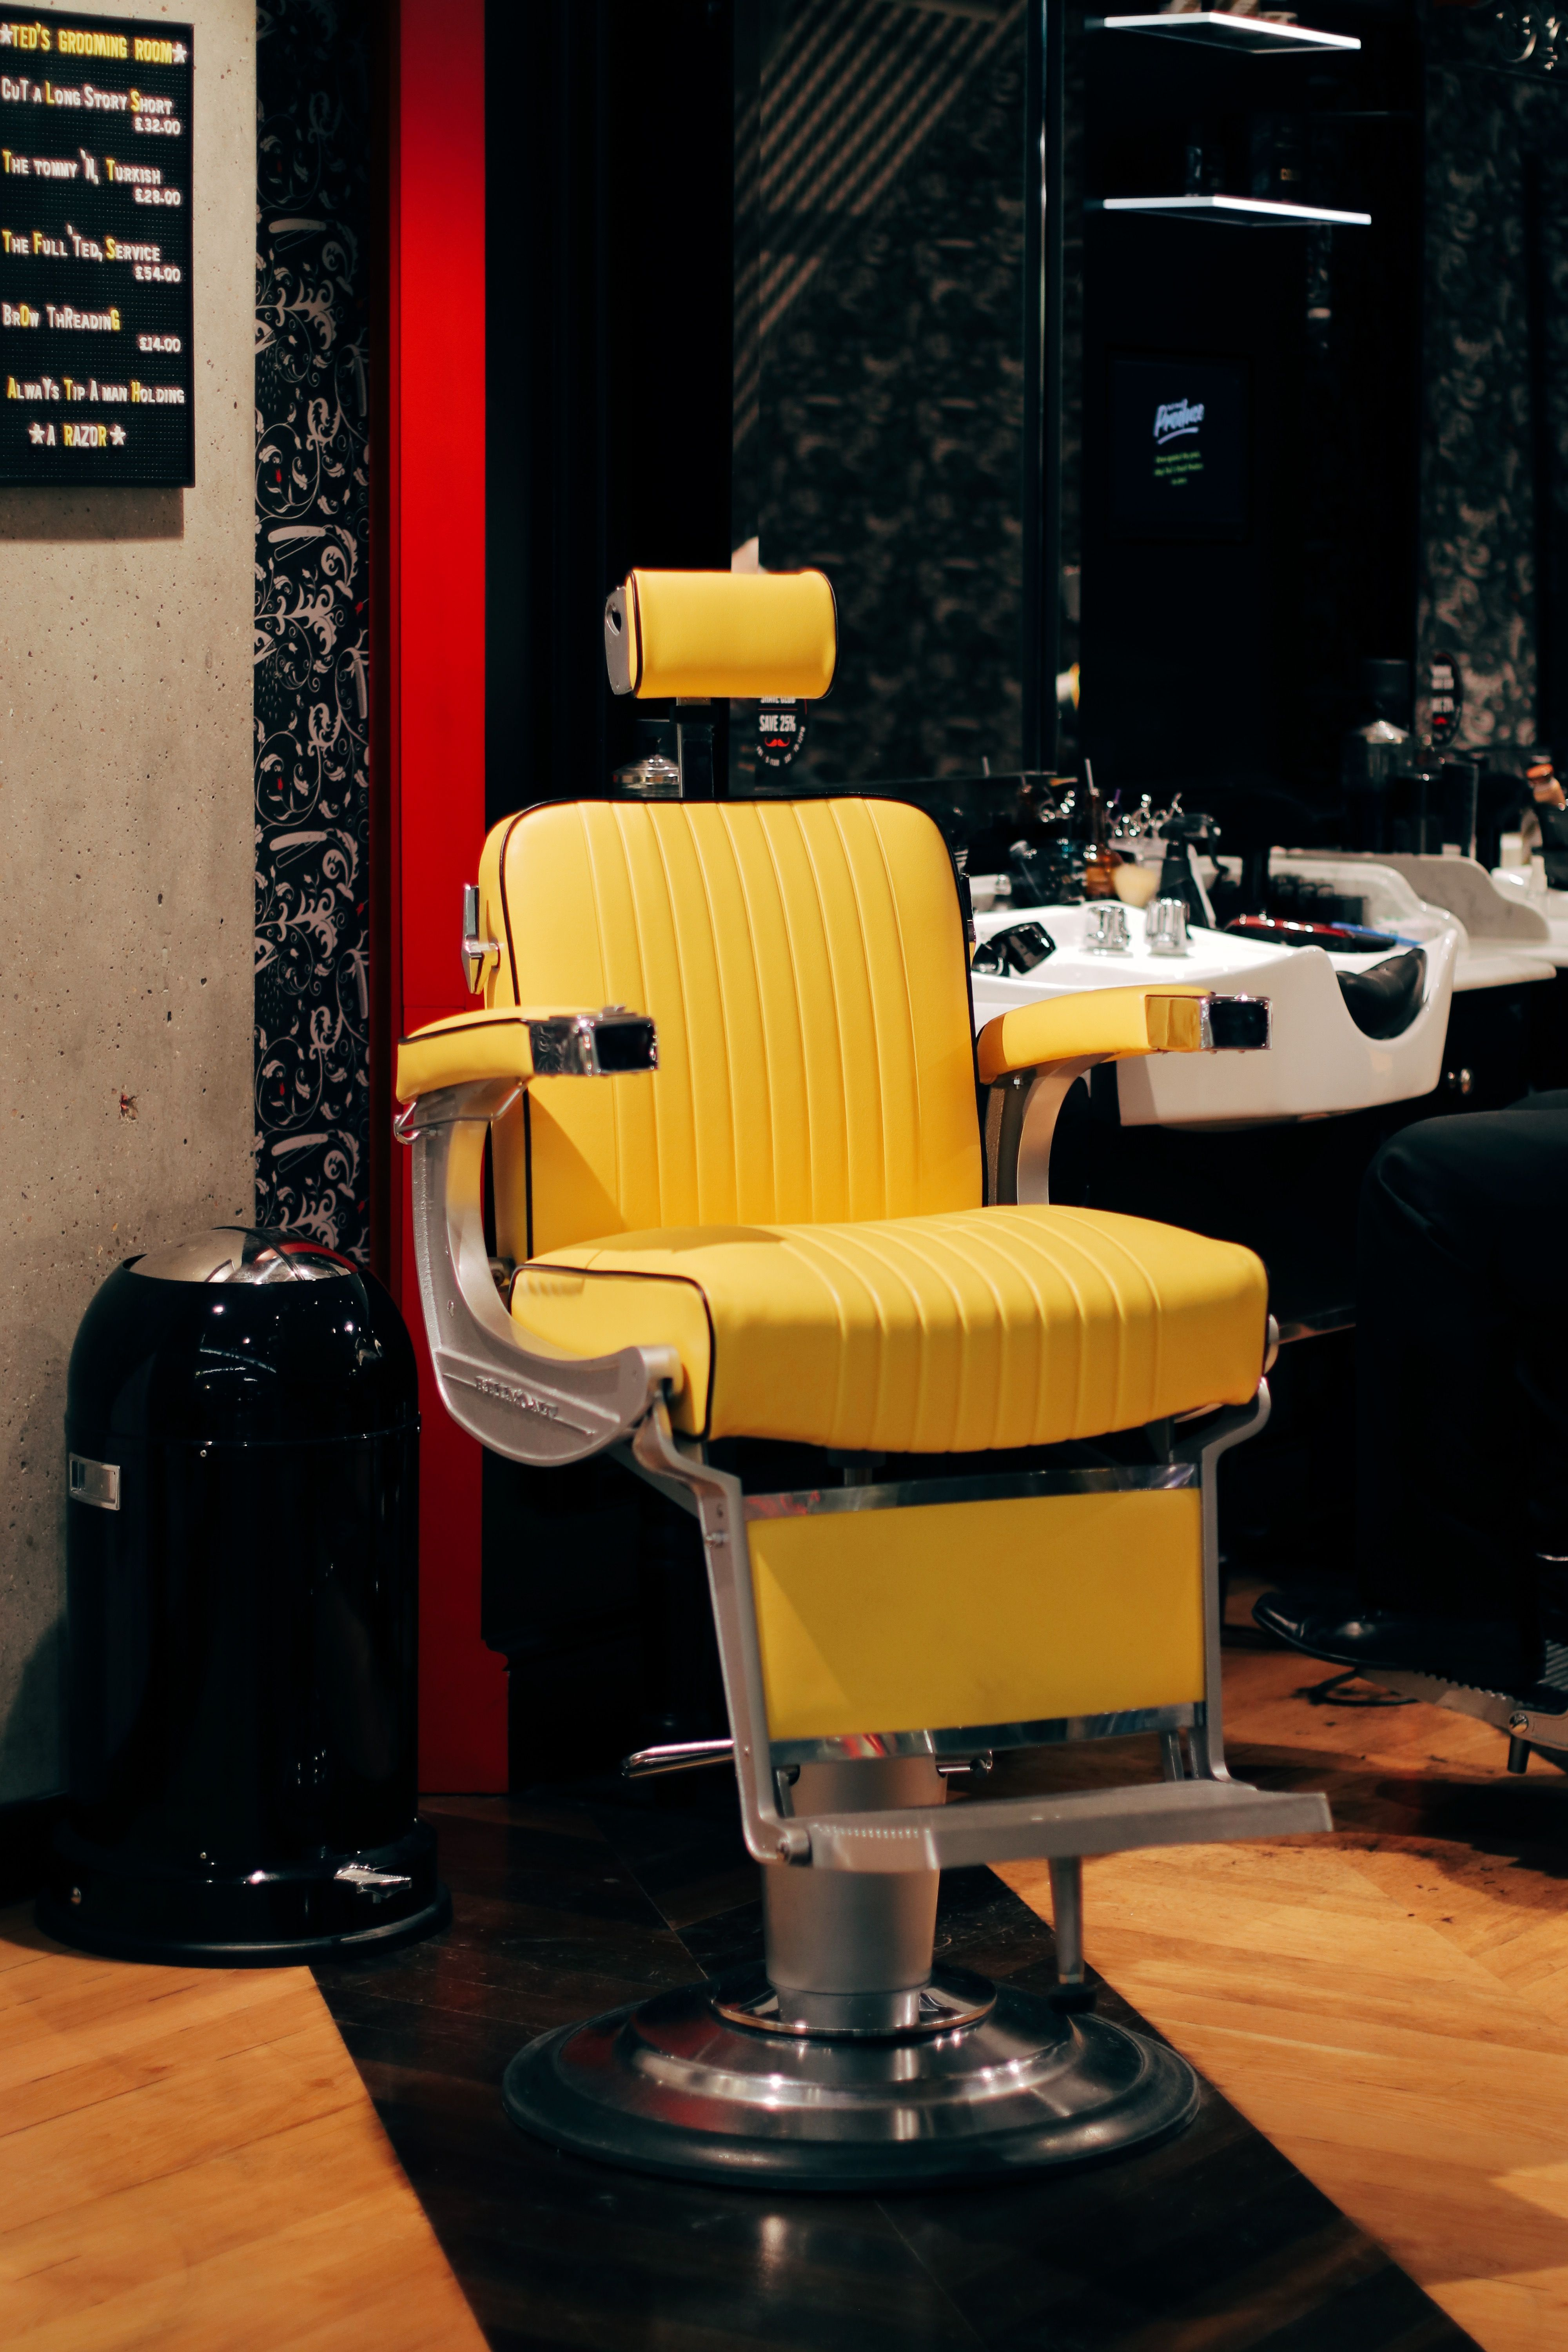 Come In And Let The Canary Yellows Brighten Your Day Barbershop